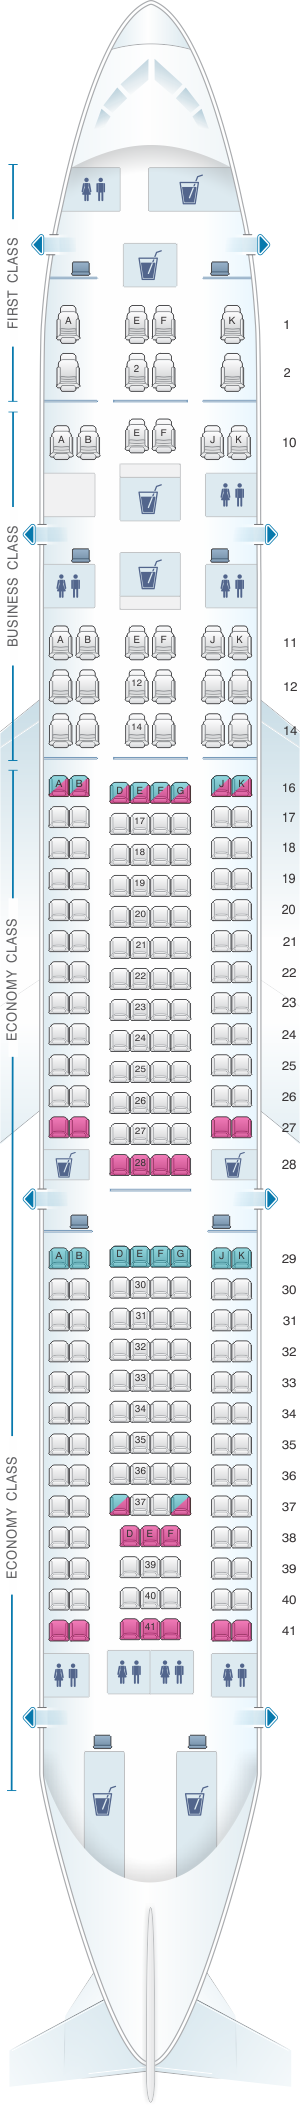 Seat map for Airbus A330 200 232pax